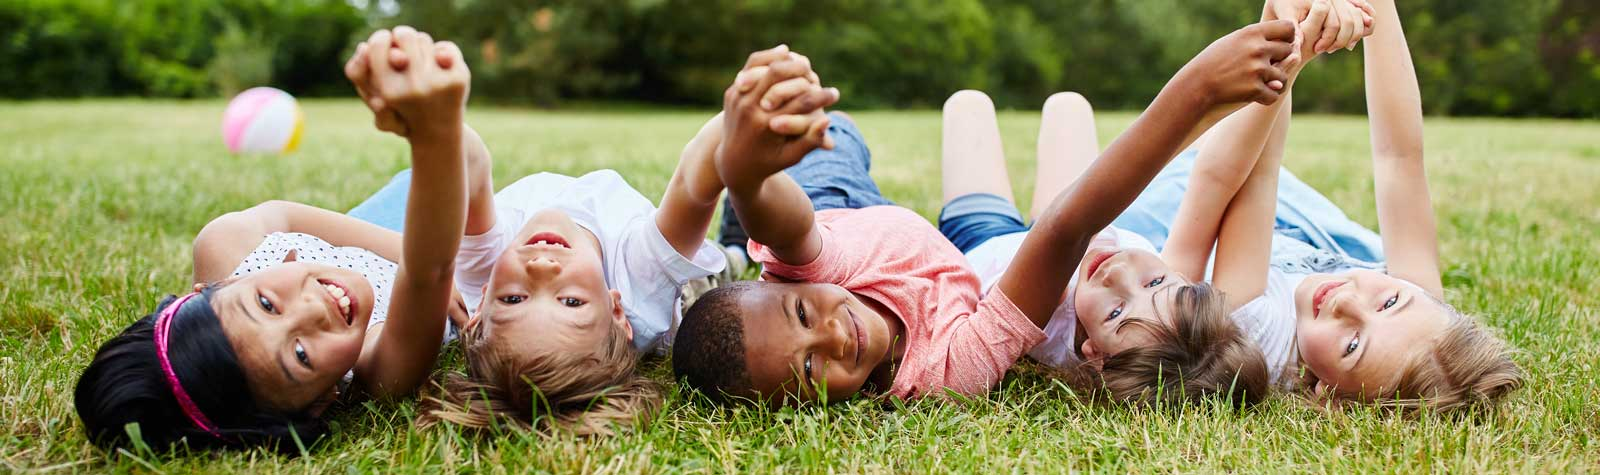 Summer Camp for Kids with ADHD: Expert Tips and Activity Ideas